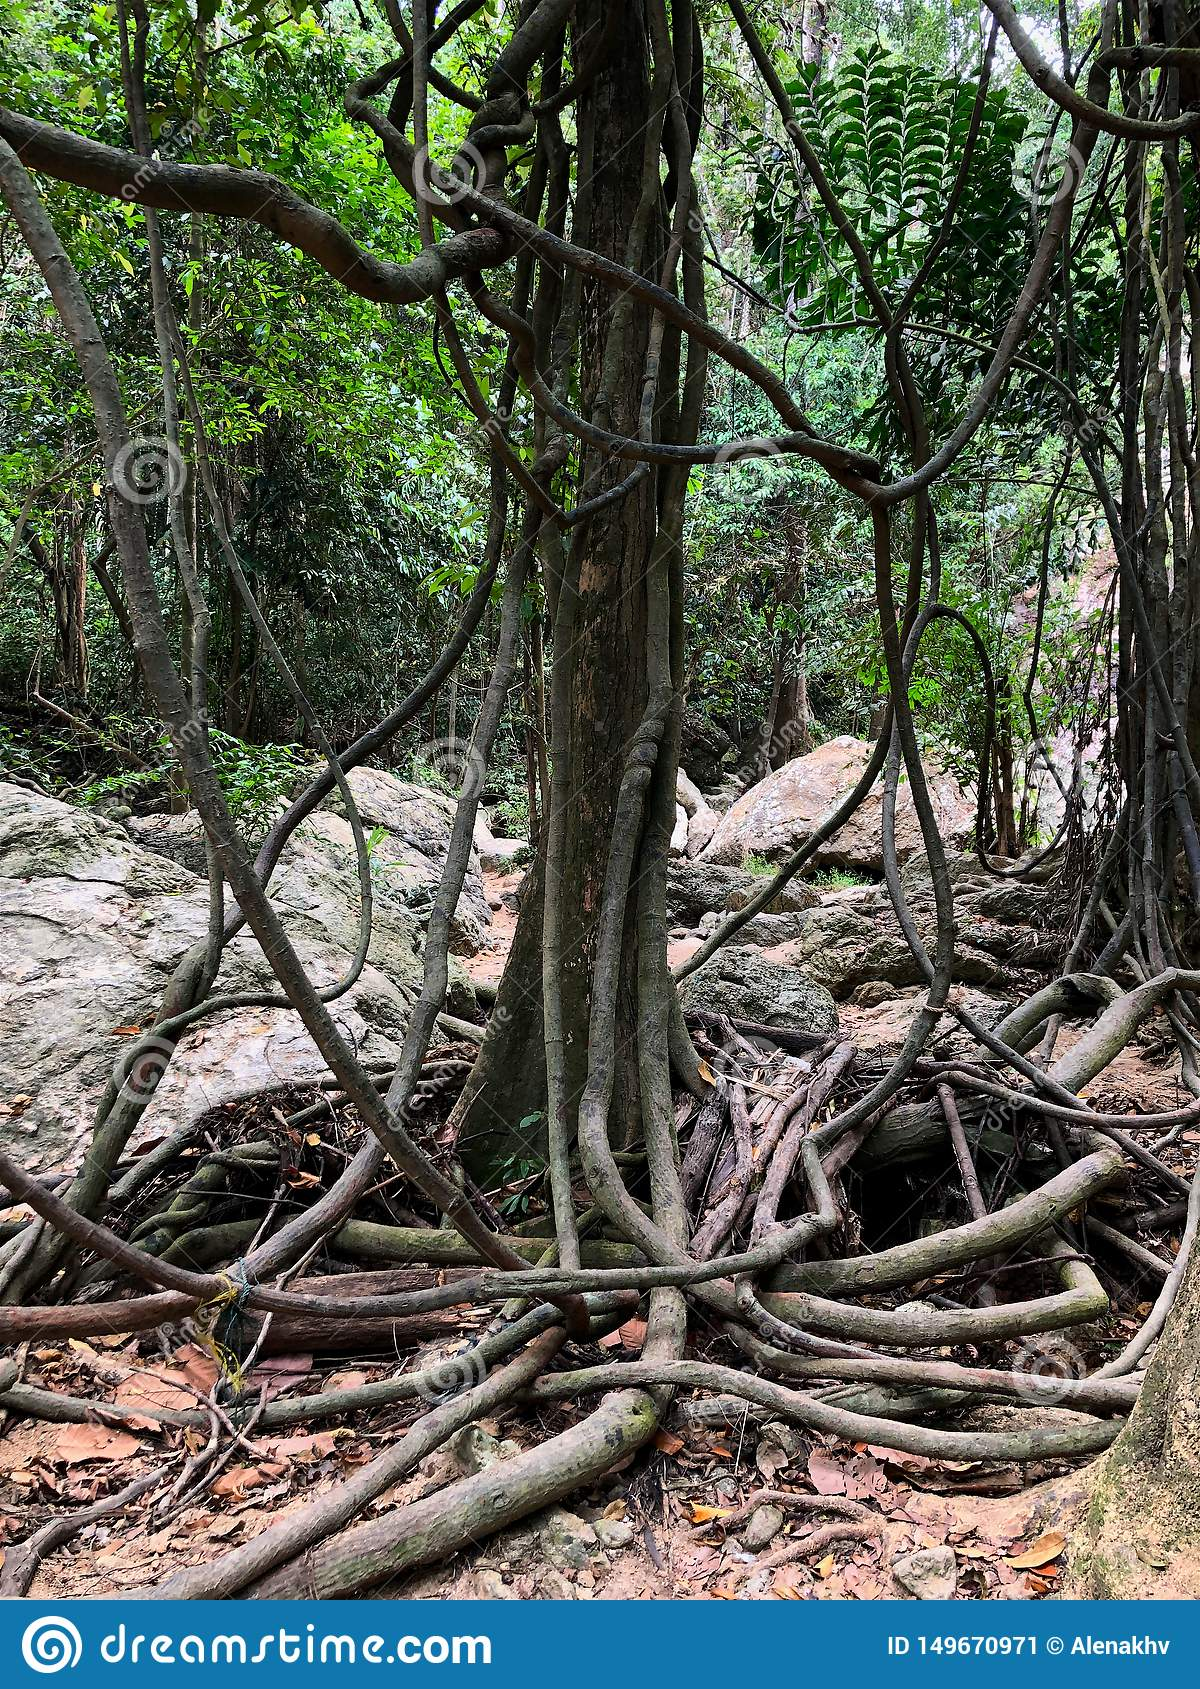 Tropical tree twisted with lianas in tropical rainforest